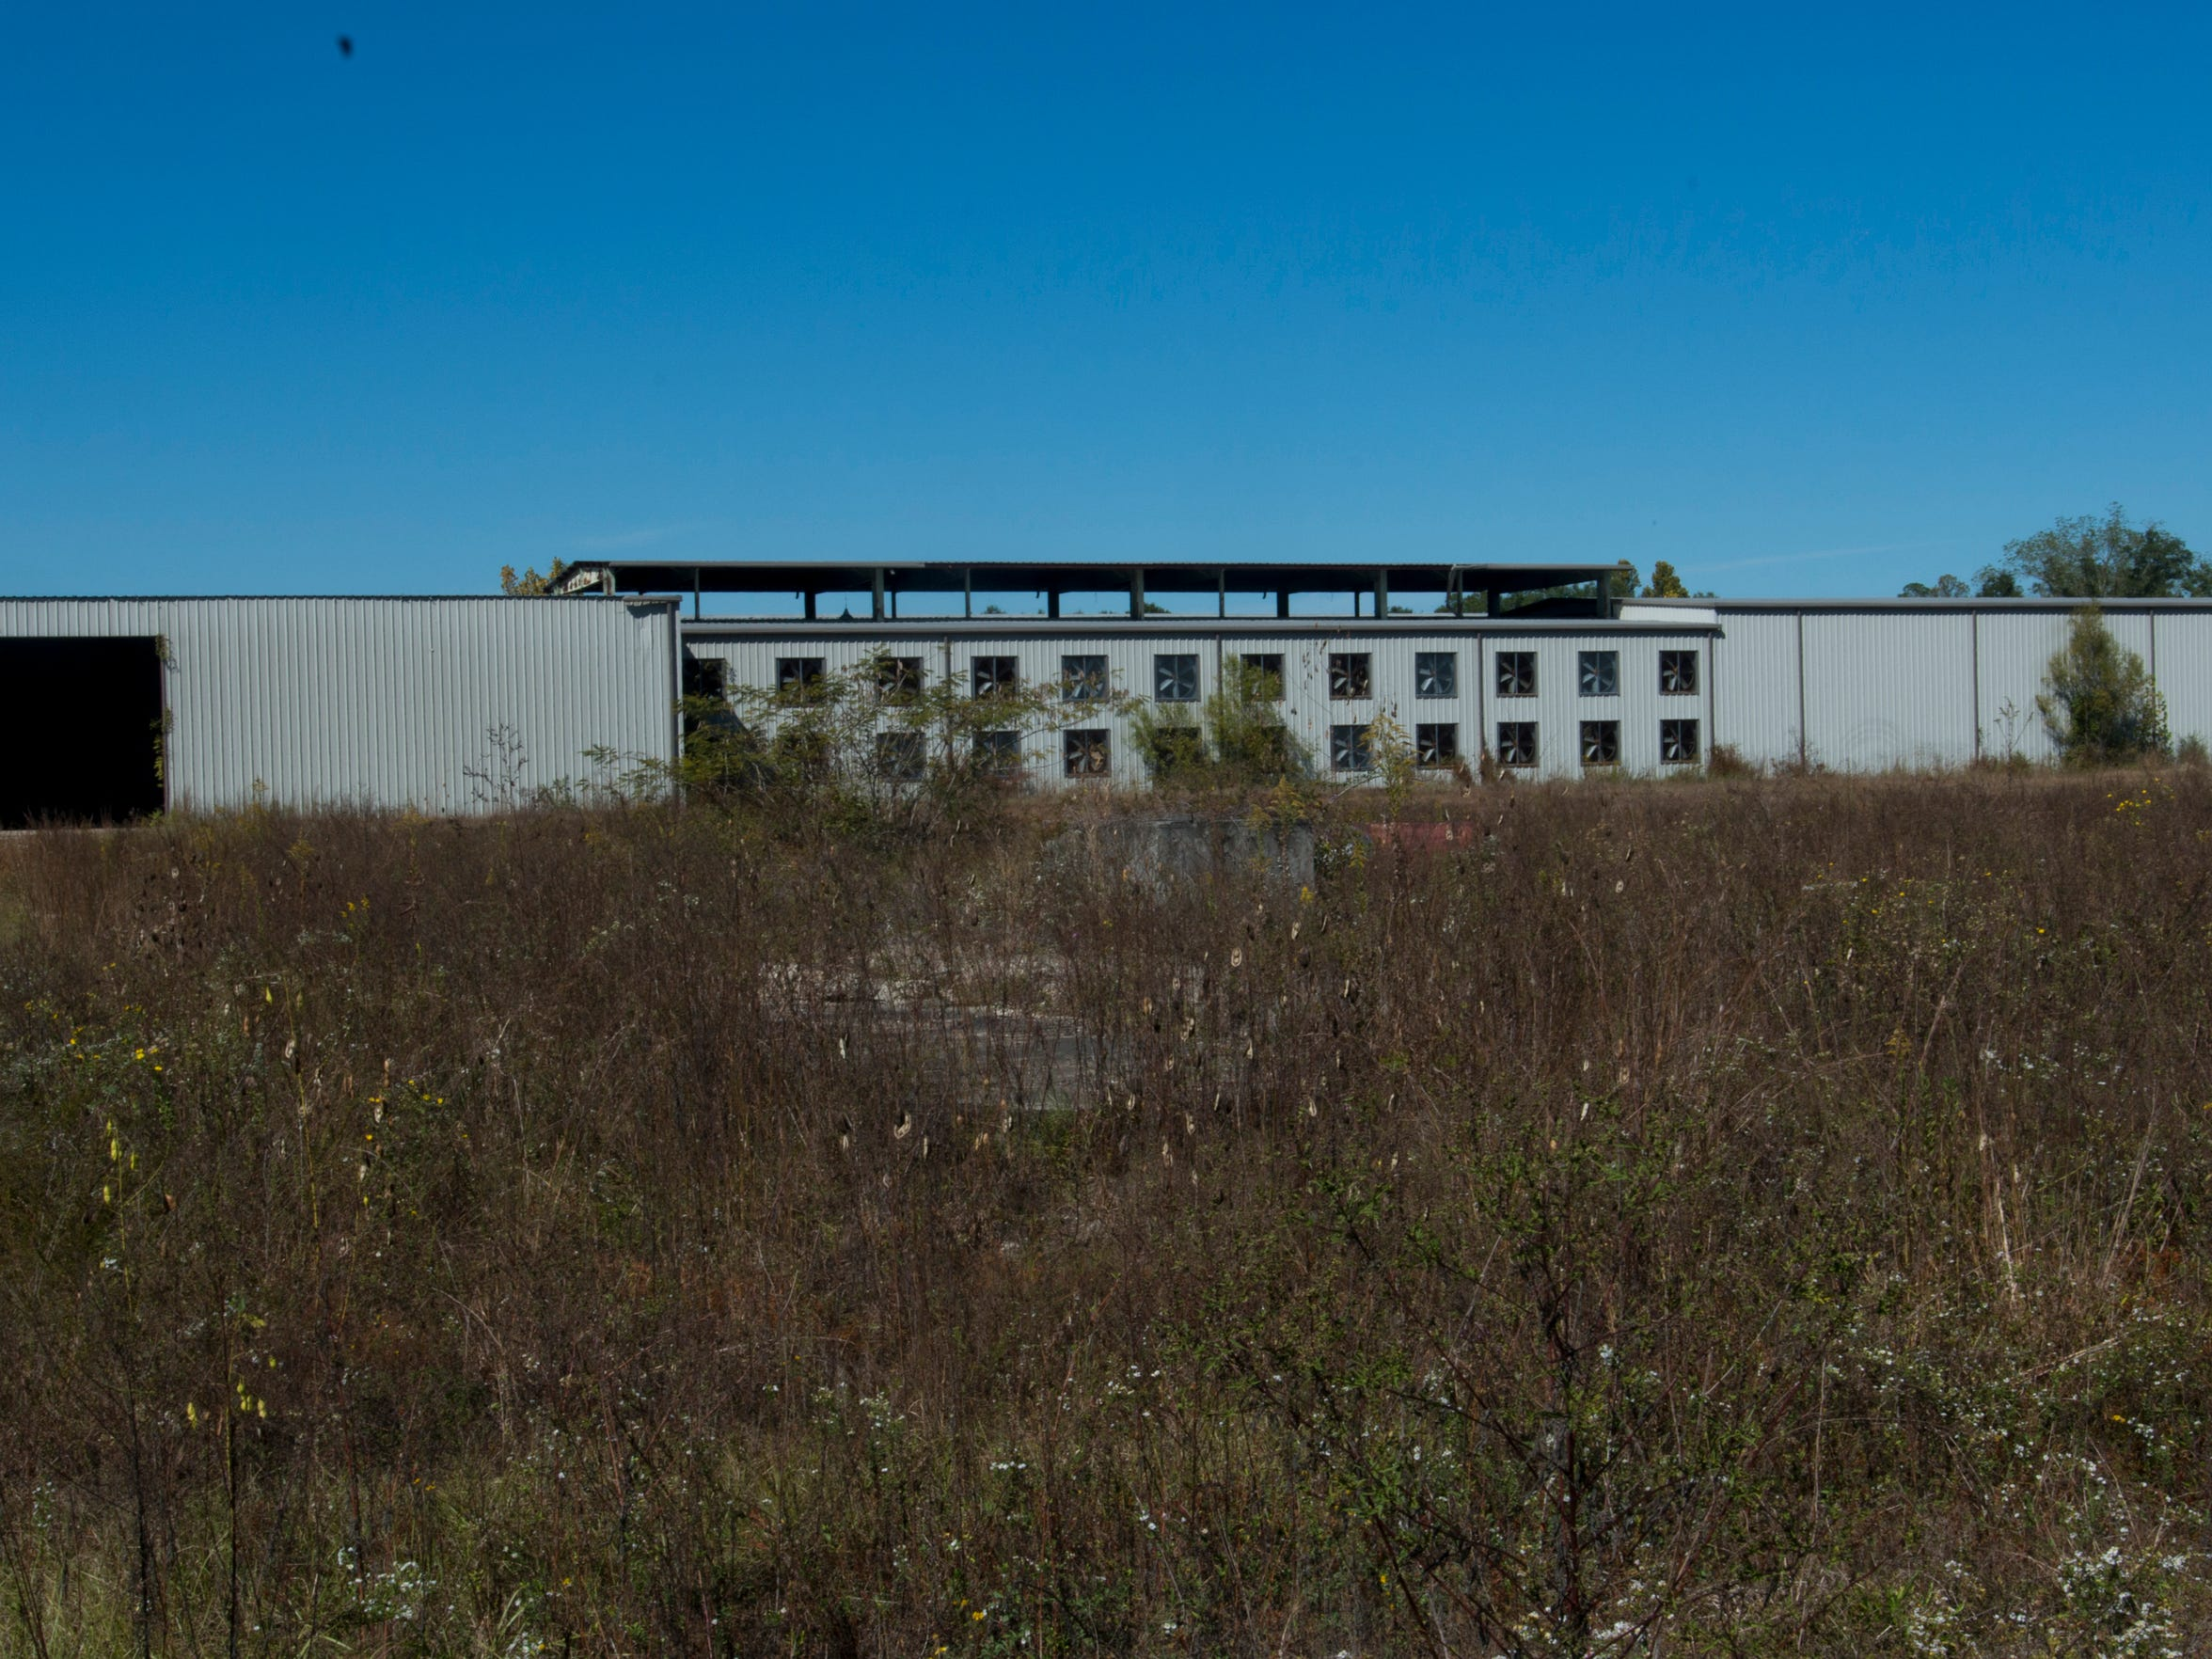 A derelict and forgotten mill in the Northern Escambia County town of Century sits on an overgrown lot and abandoned.